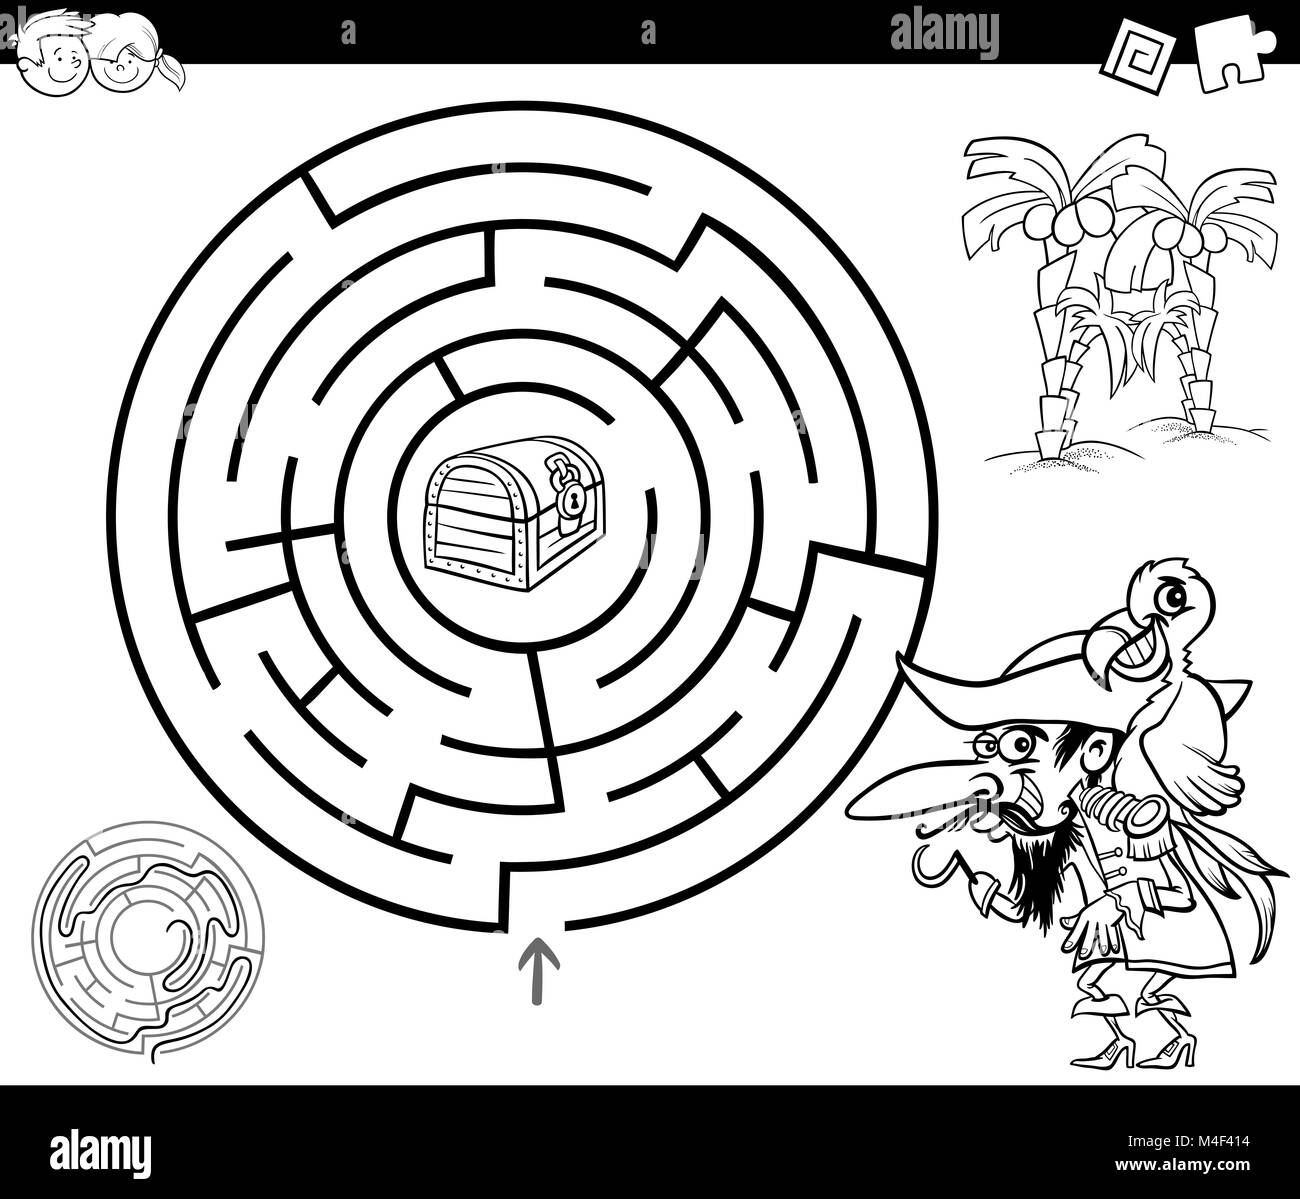 maze with pirate coloring page Stock Photo: 174894752 - Alamy